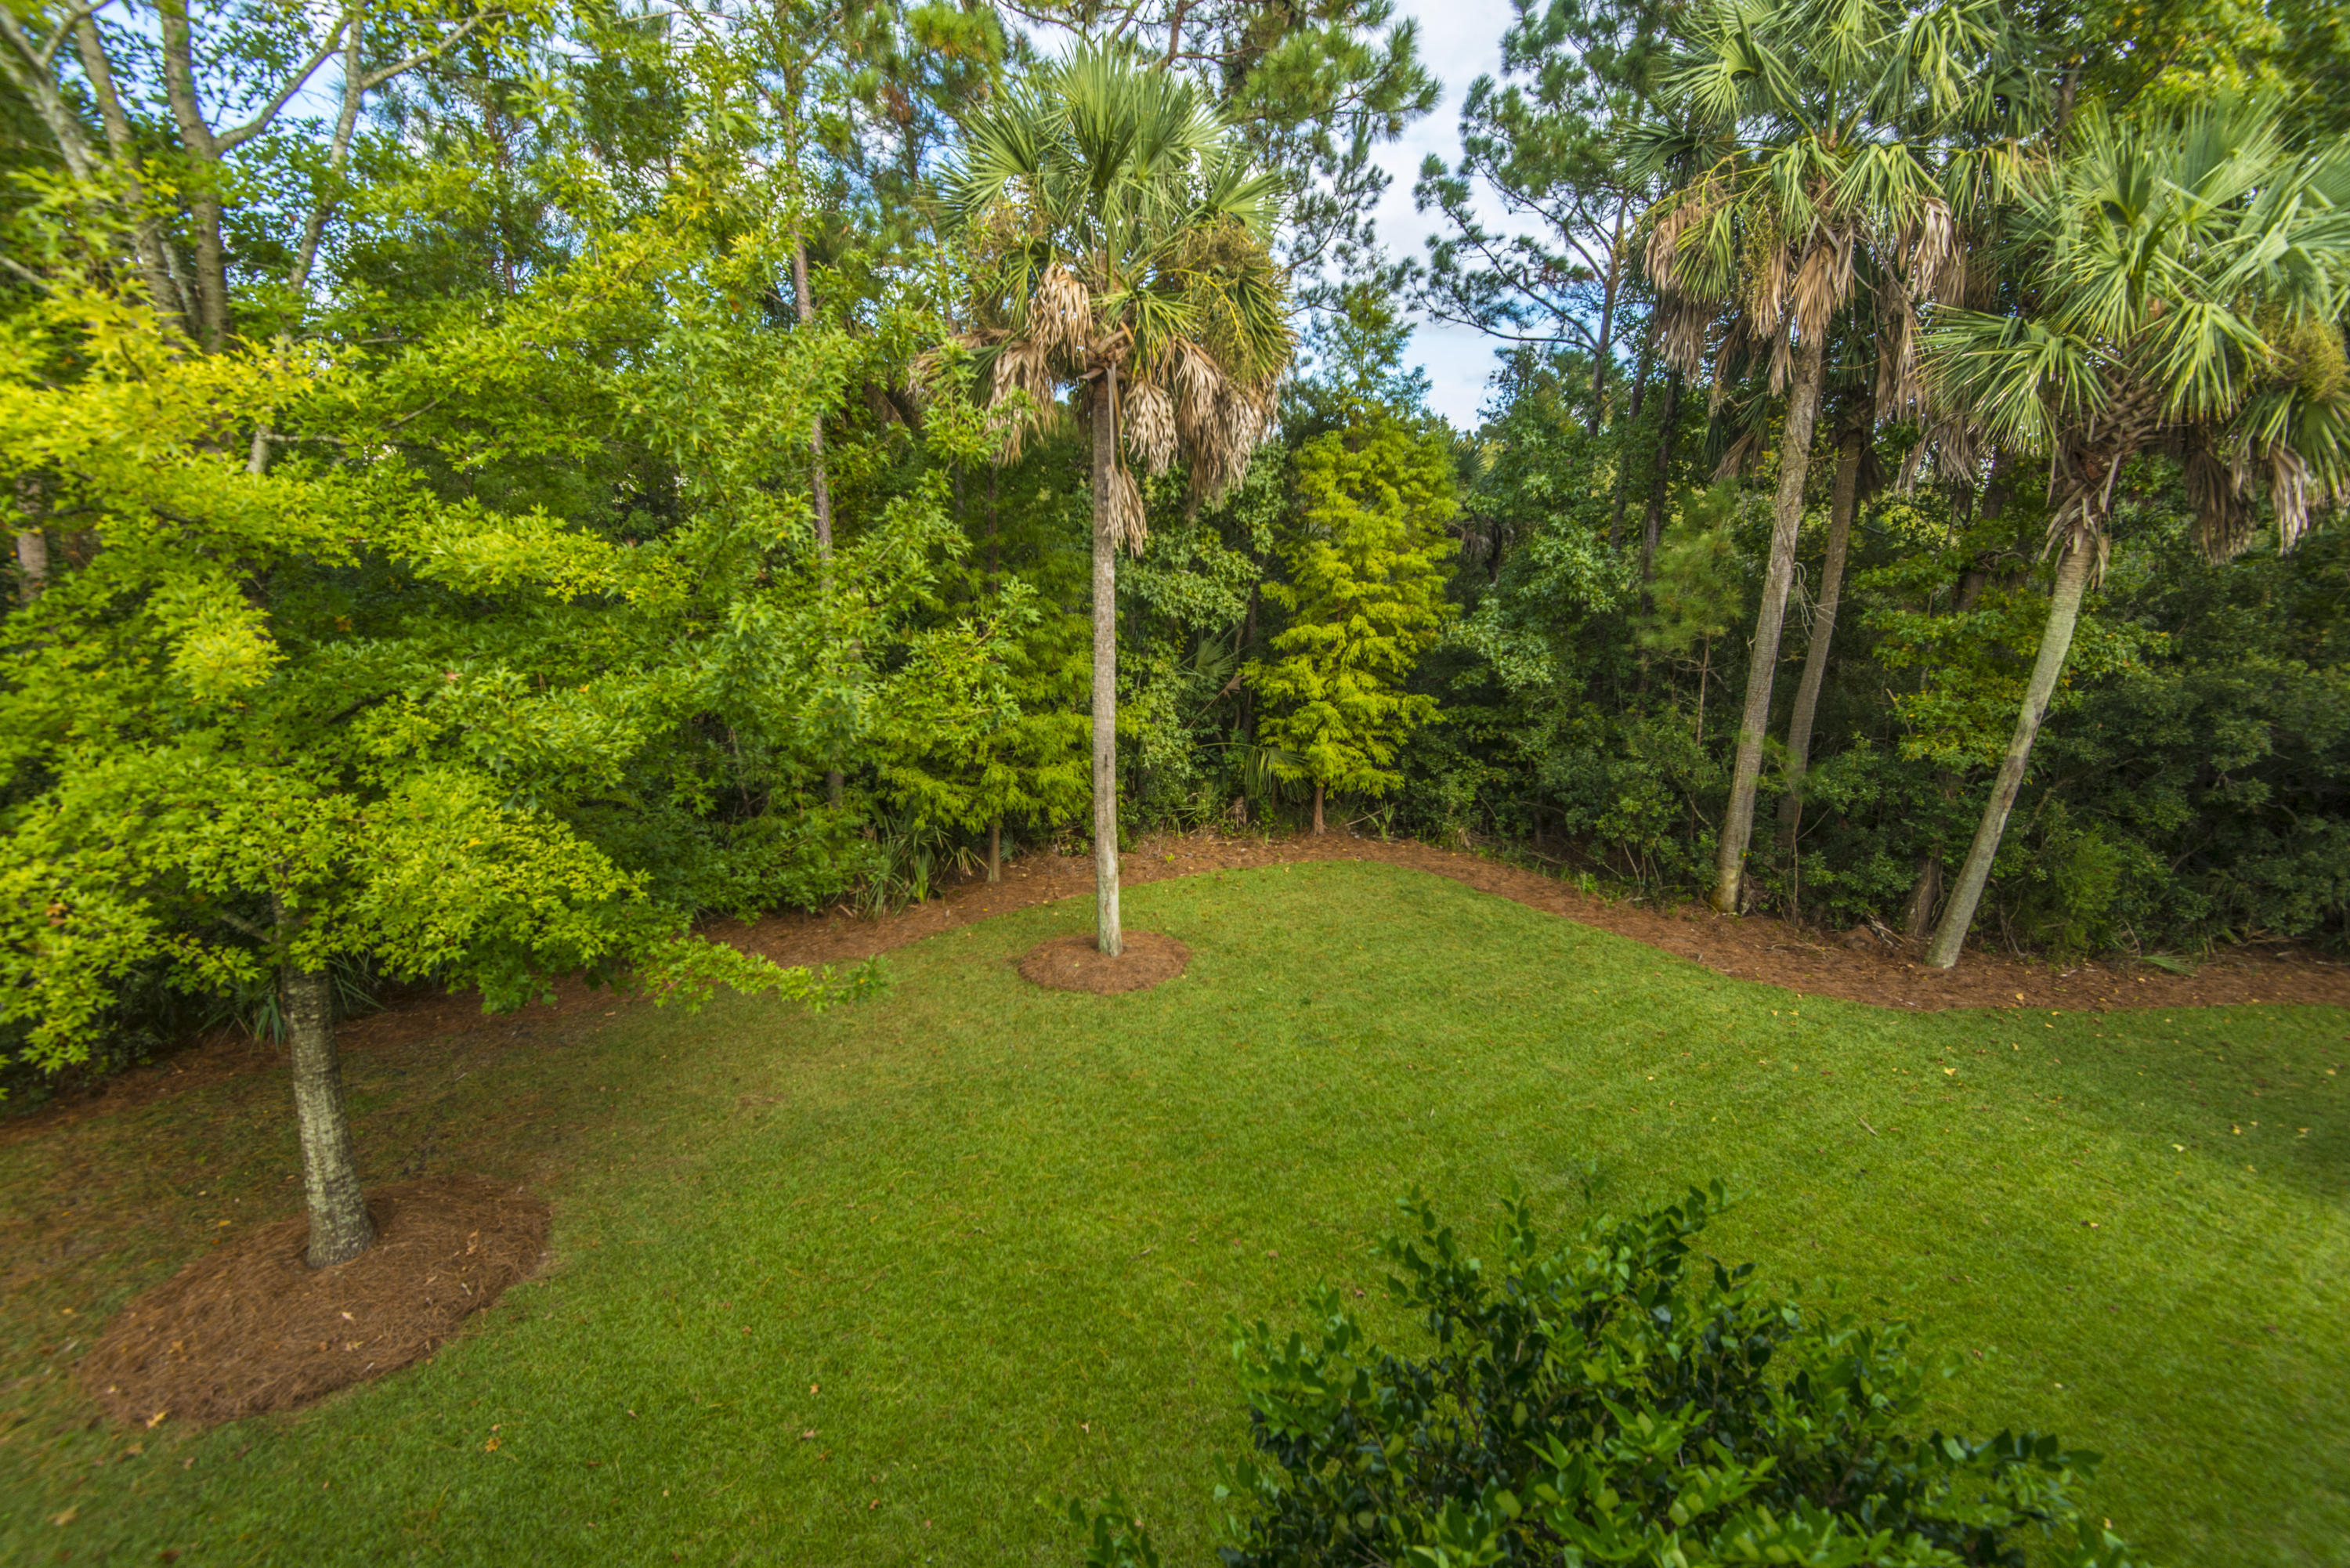 Planters Pointe Homes For Sale - 2605 Ringsted Lane, Mount Pleasant, SC - 2